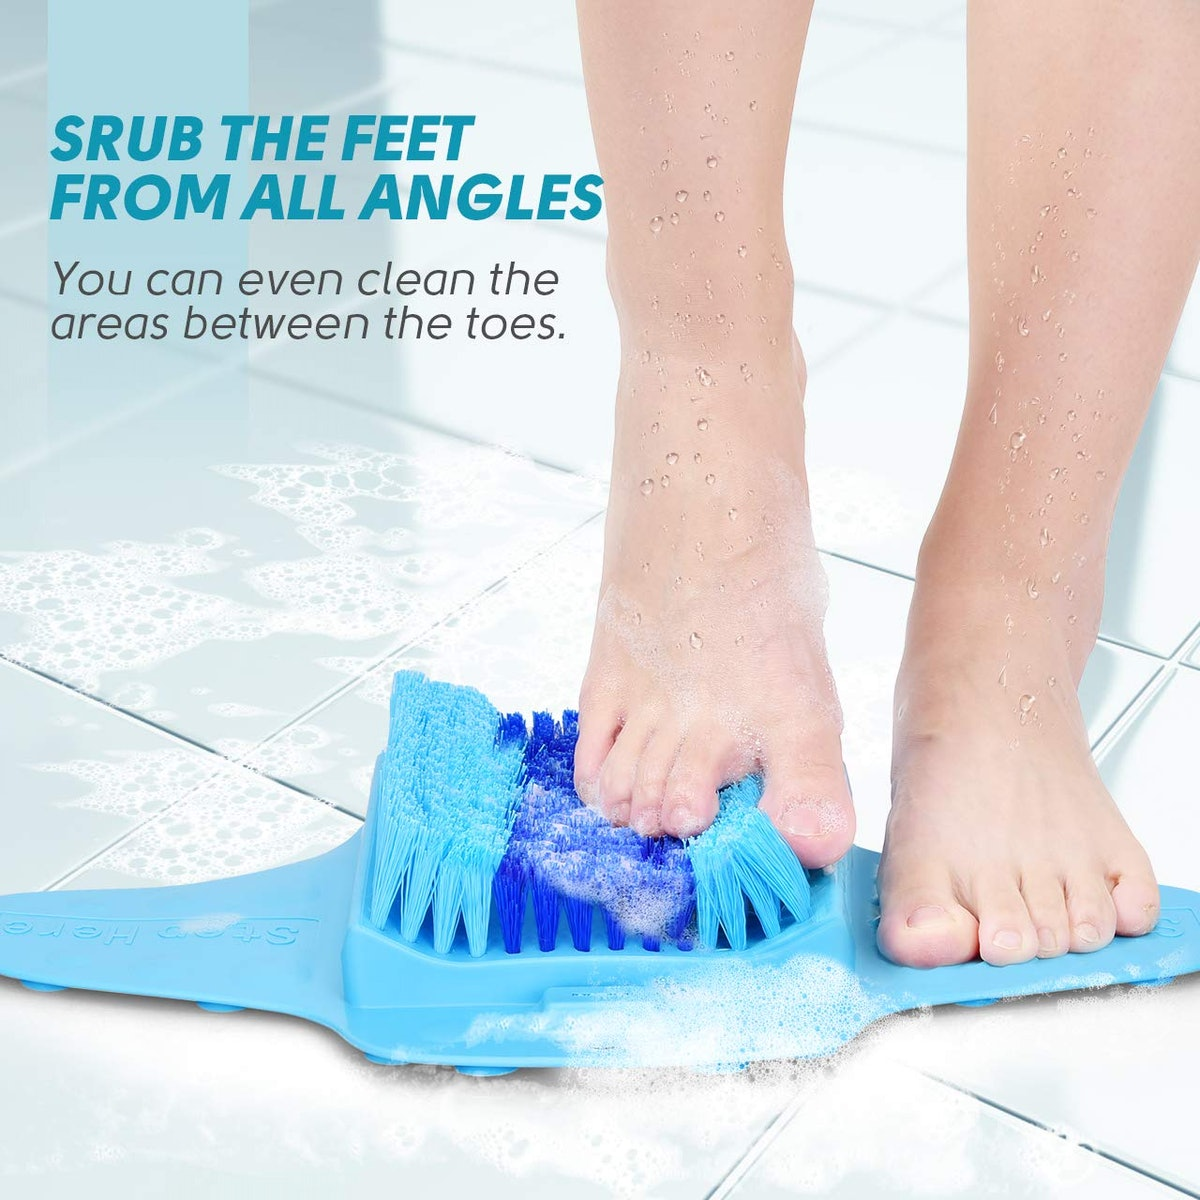 BESKAR Foot Scrubber for Shower with Pumice Stone